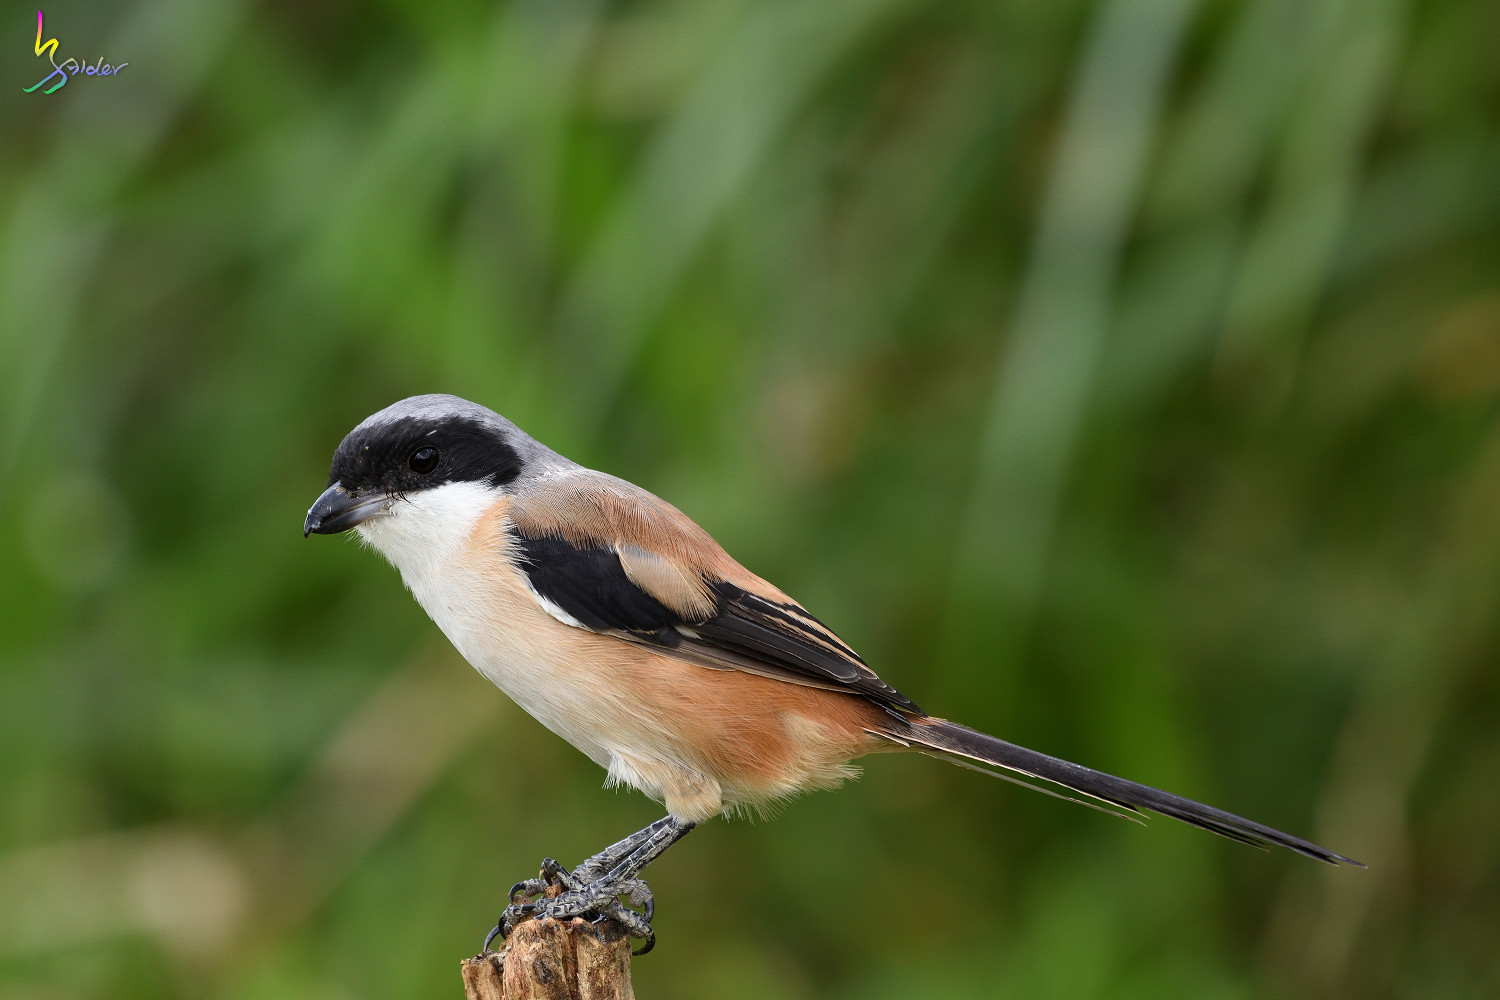 Long-tailed_Shrike_0887